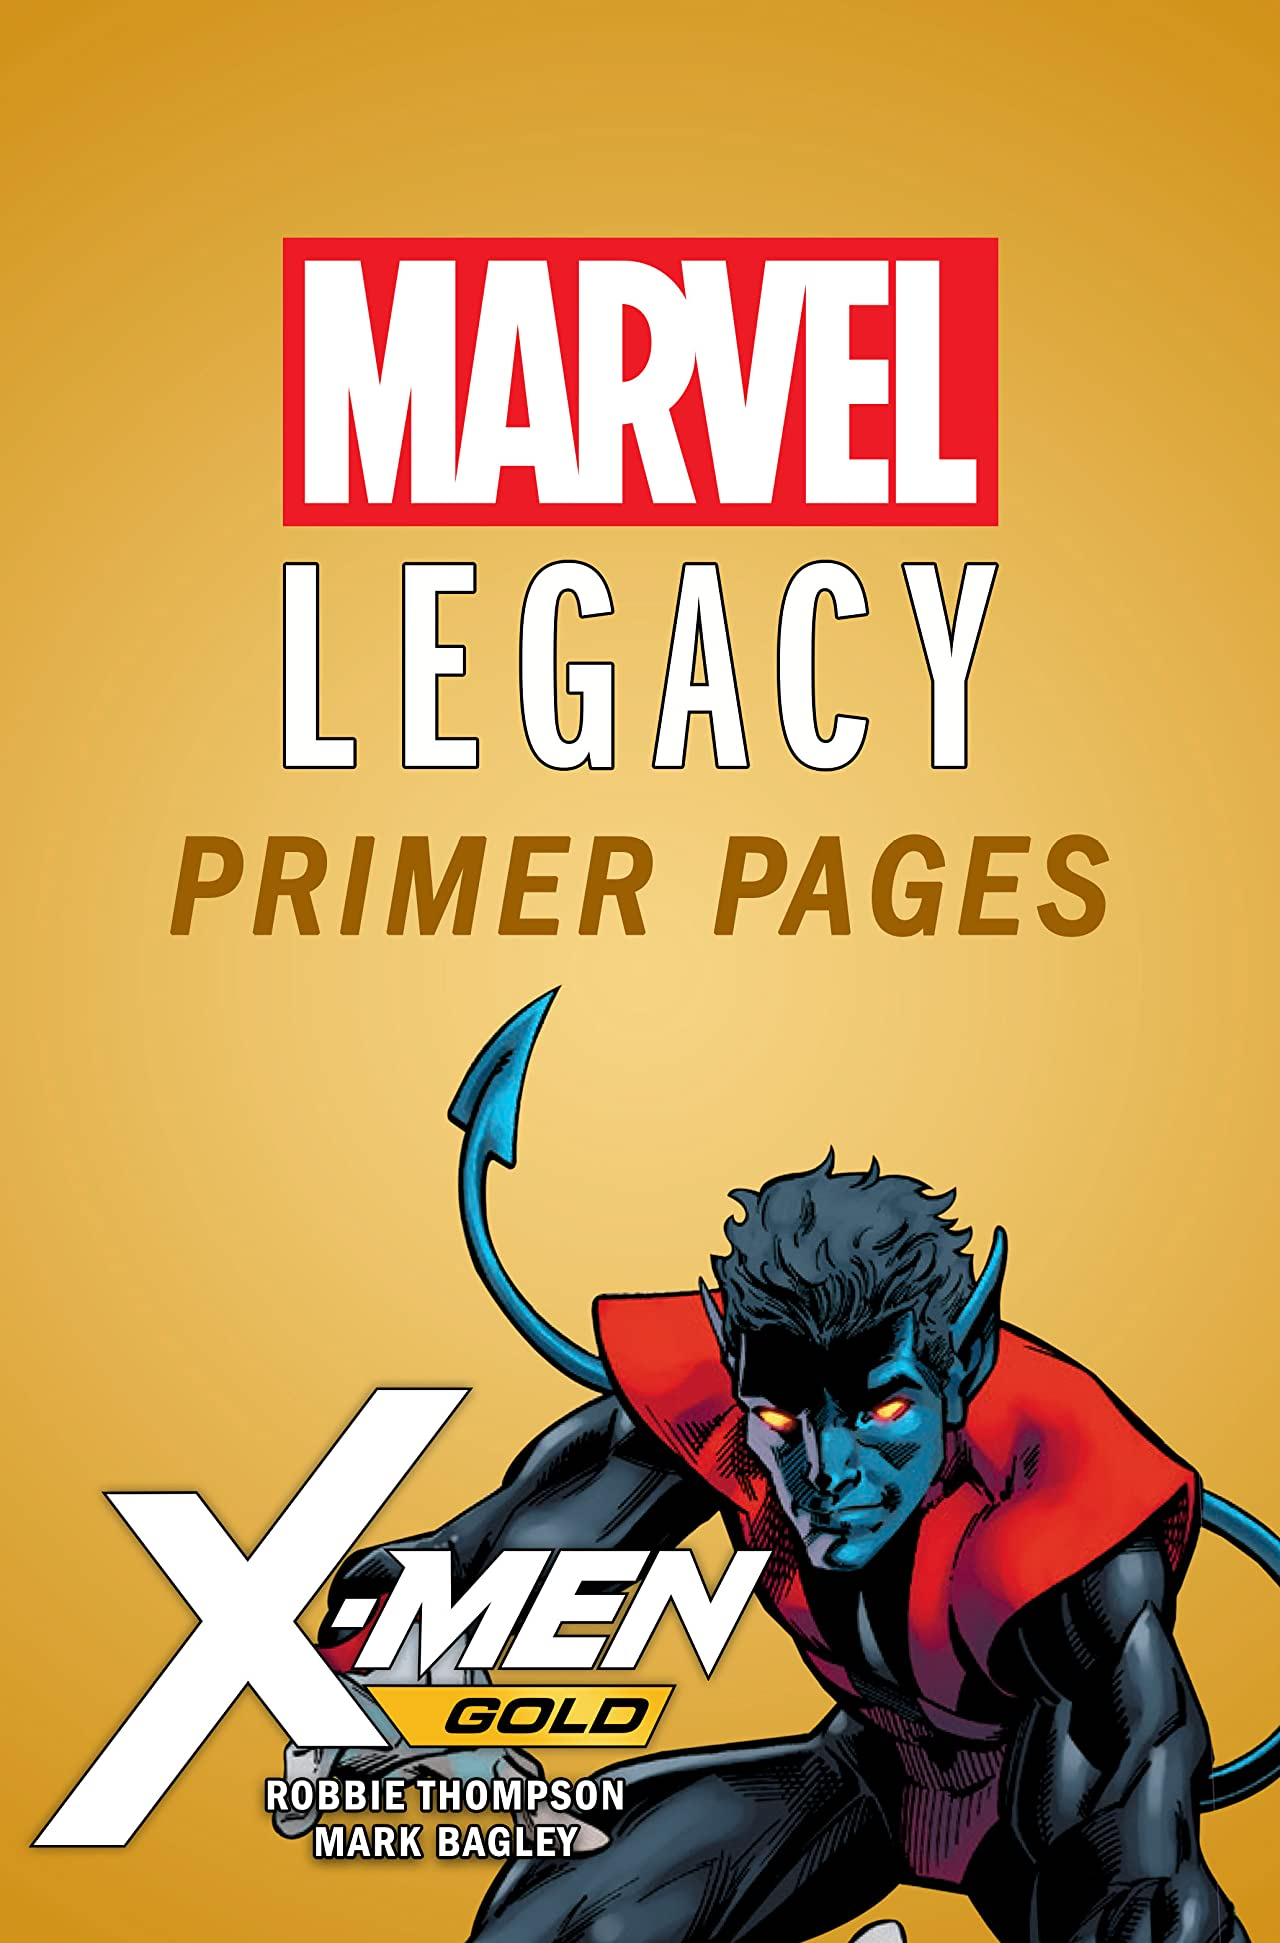 X-Men Gold - Marvel Legacy Primer Pages